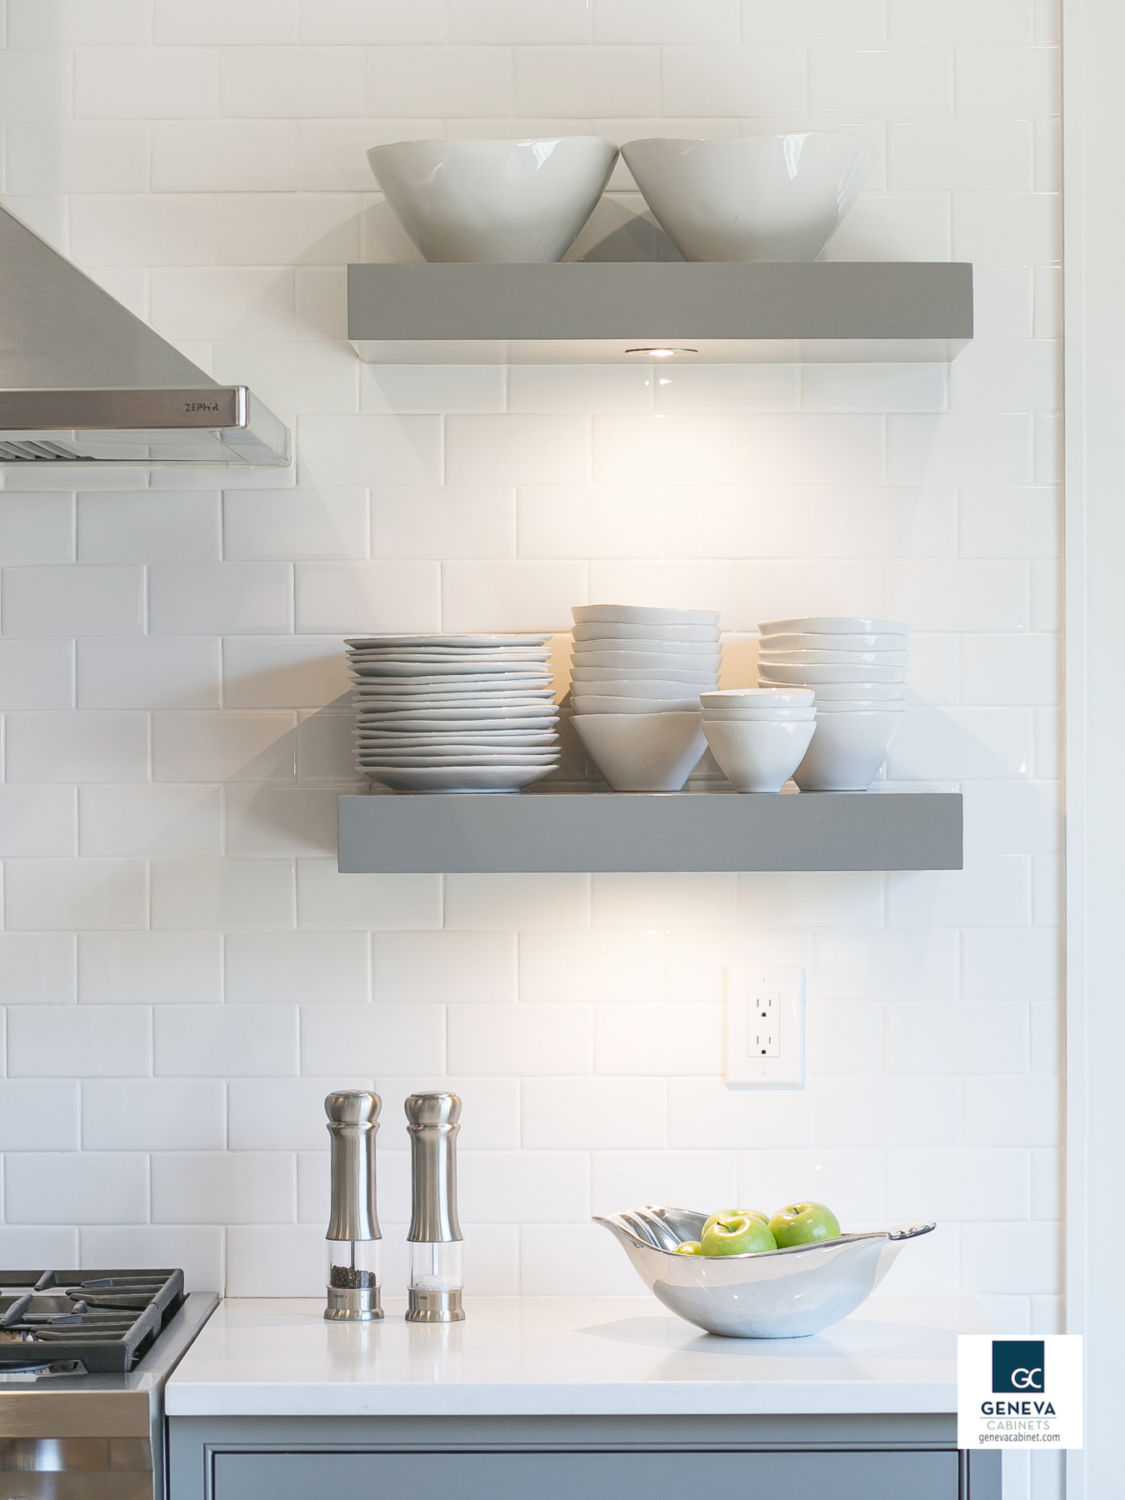 Geneva Cabinet Company Lake Geneva Wi Kitchen shelving open shelving floating shelves with lighting